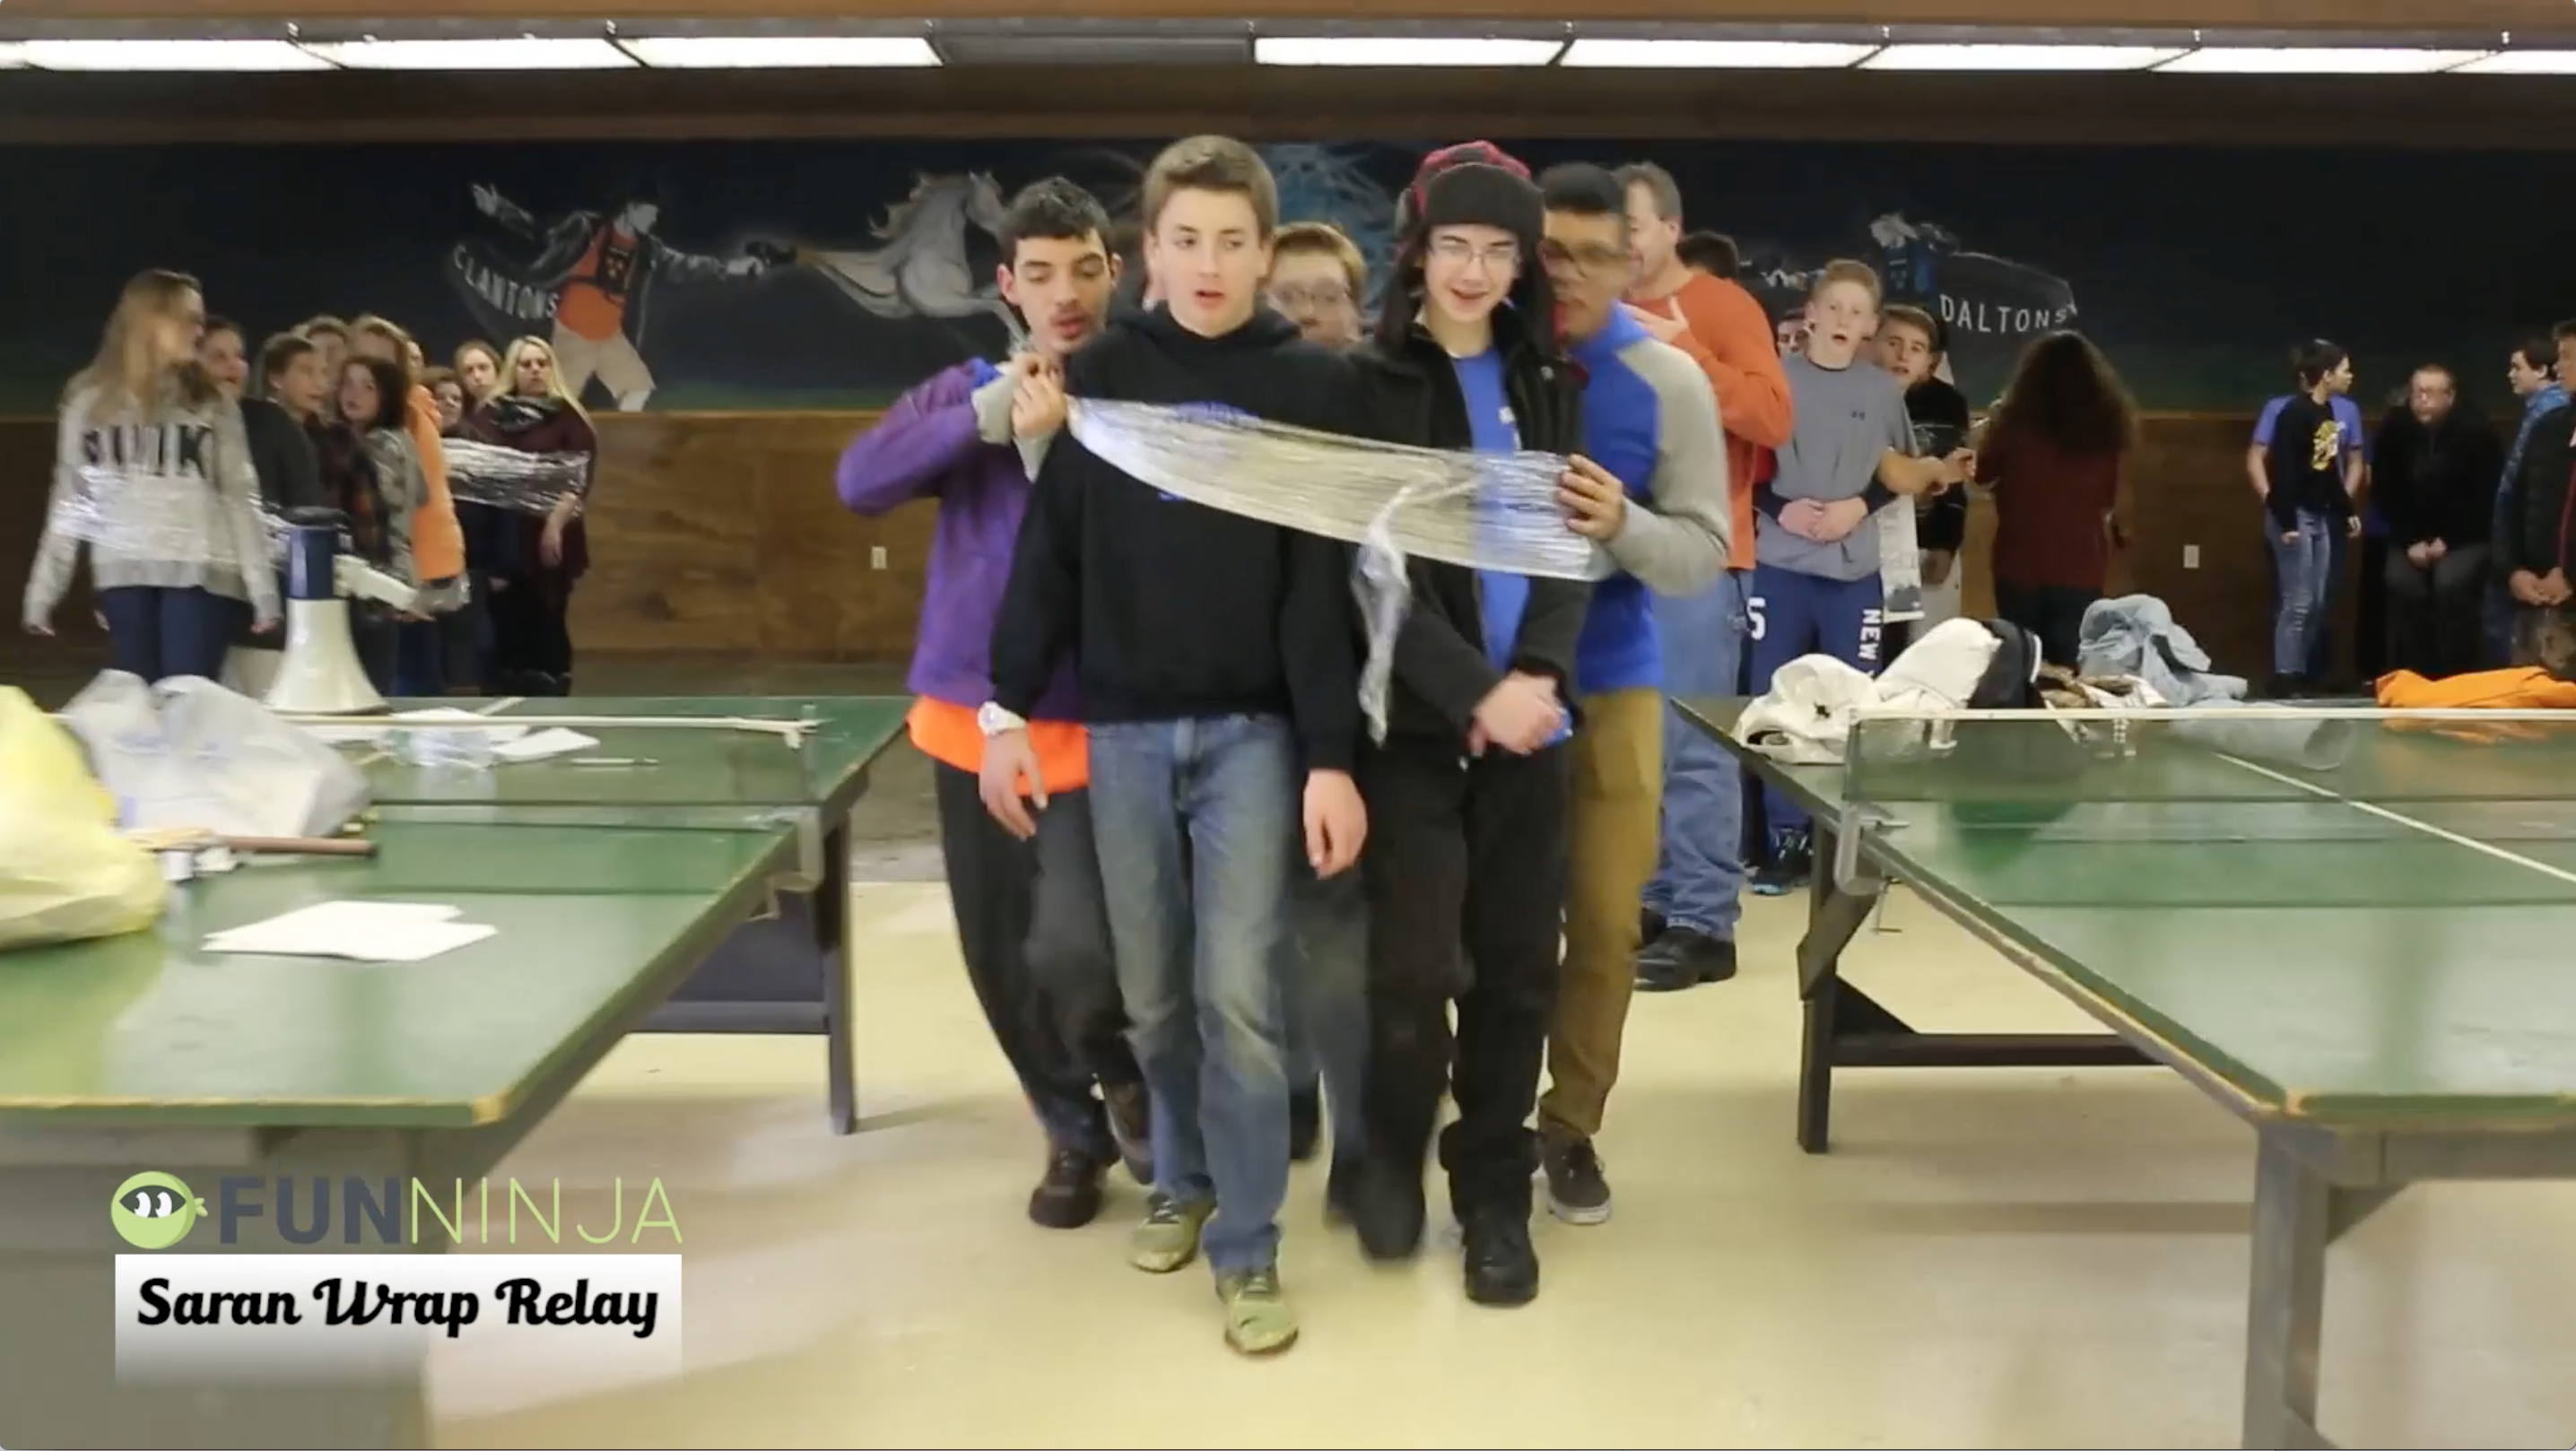 Saran Wrap Relay: Youth Group Games - Stuff You Can Use